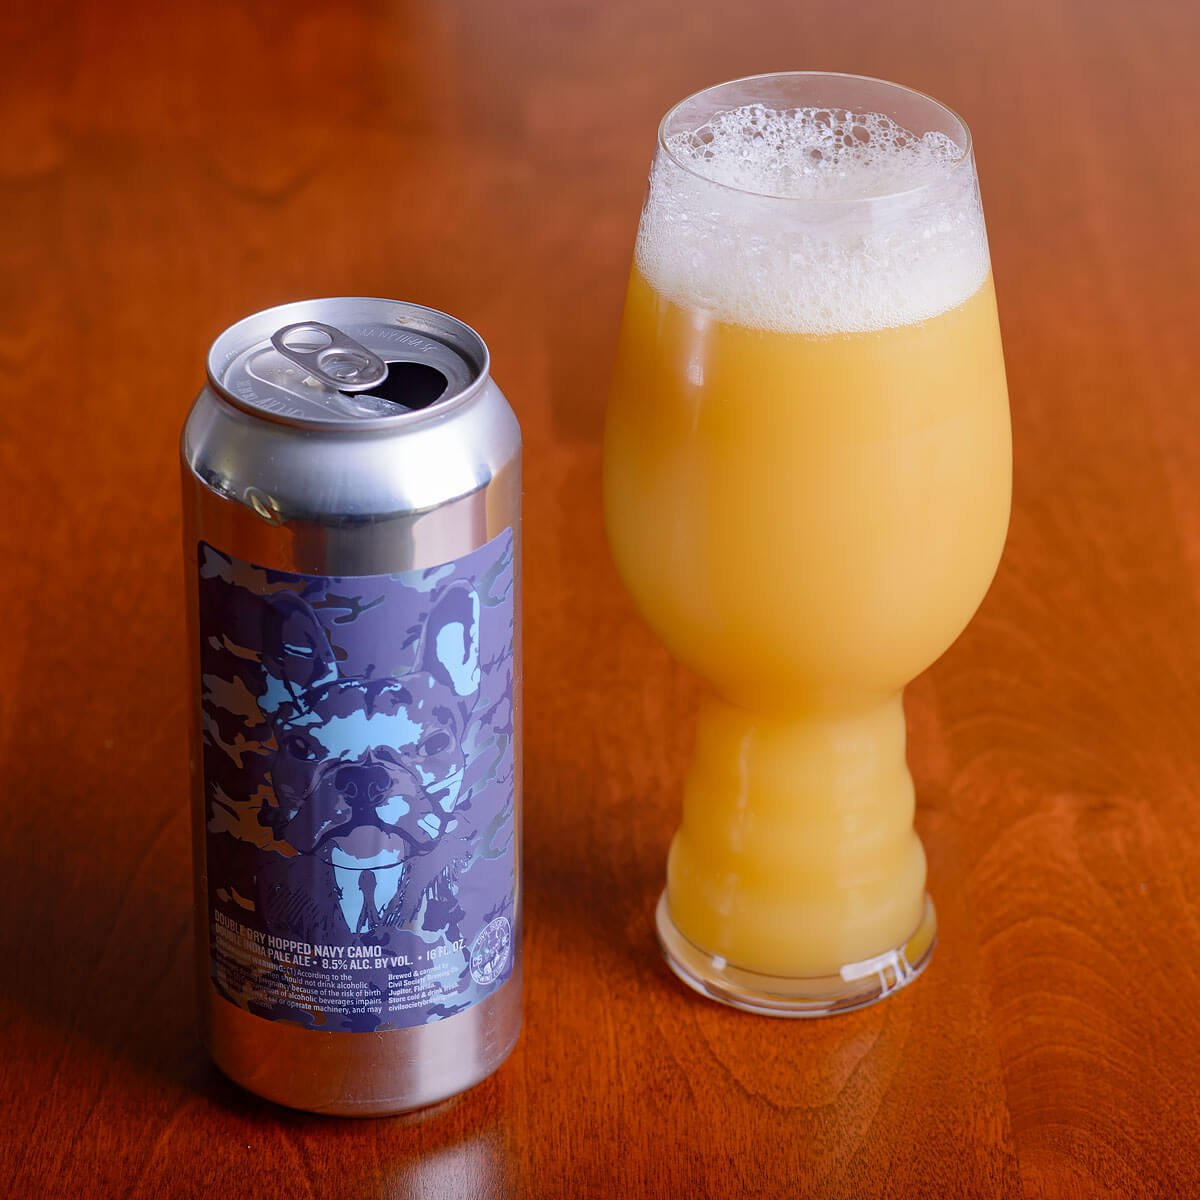 DDH Navy Camo, an American Double IPA by Civil Society Brewing Co.